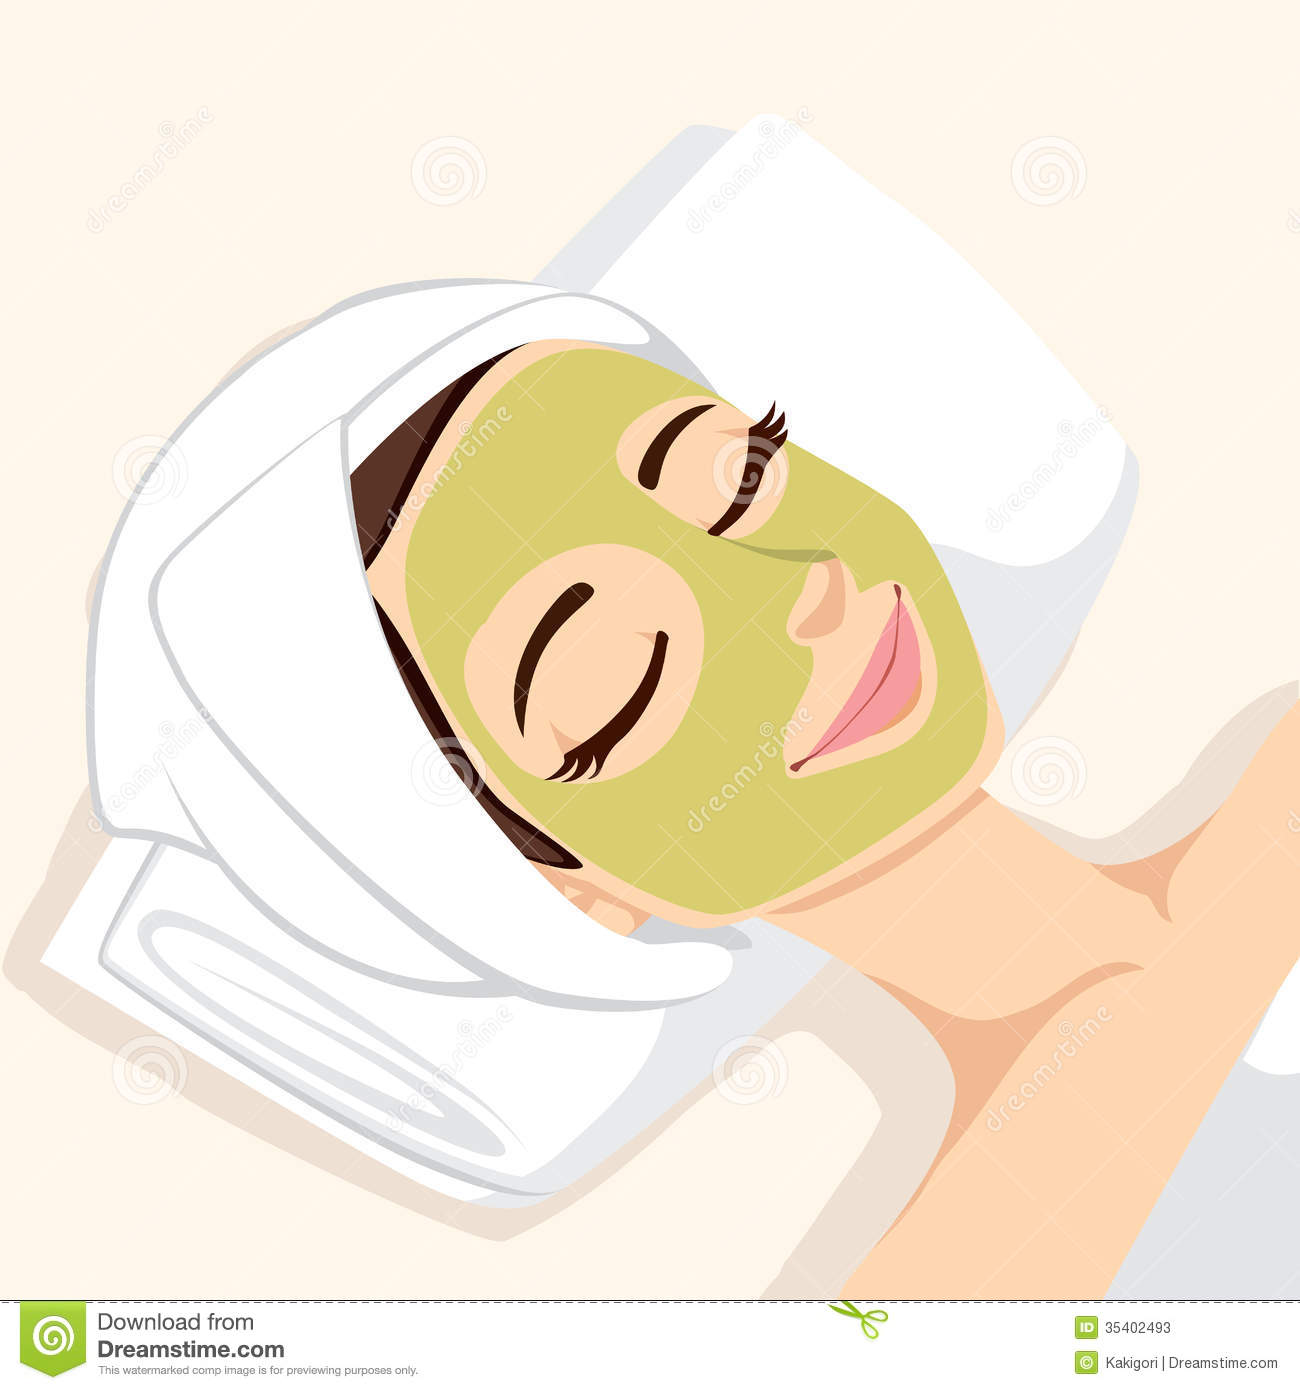 Acne Treatment With Natural Facial Green Mask To Clean Face Skin